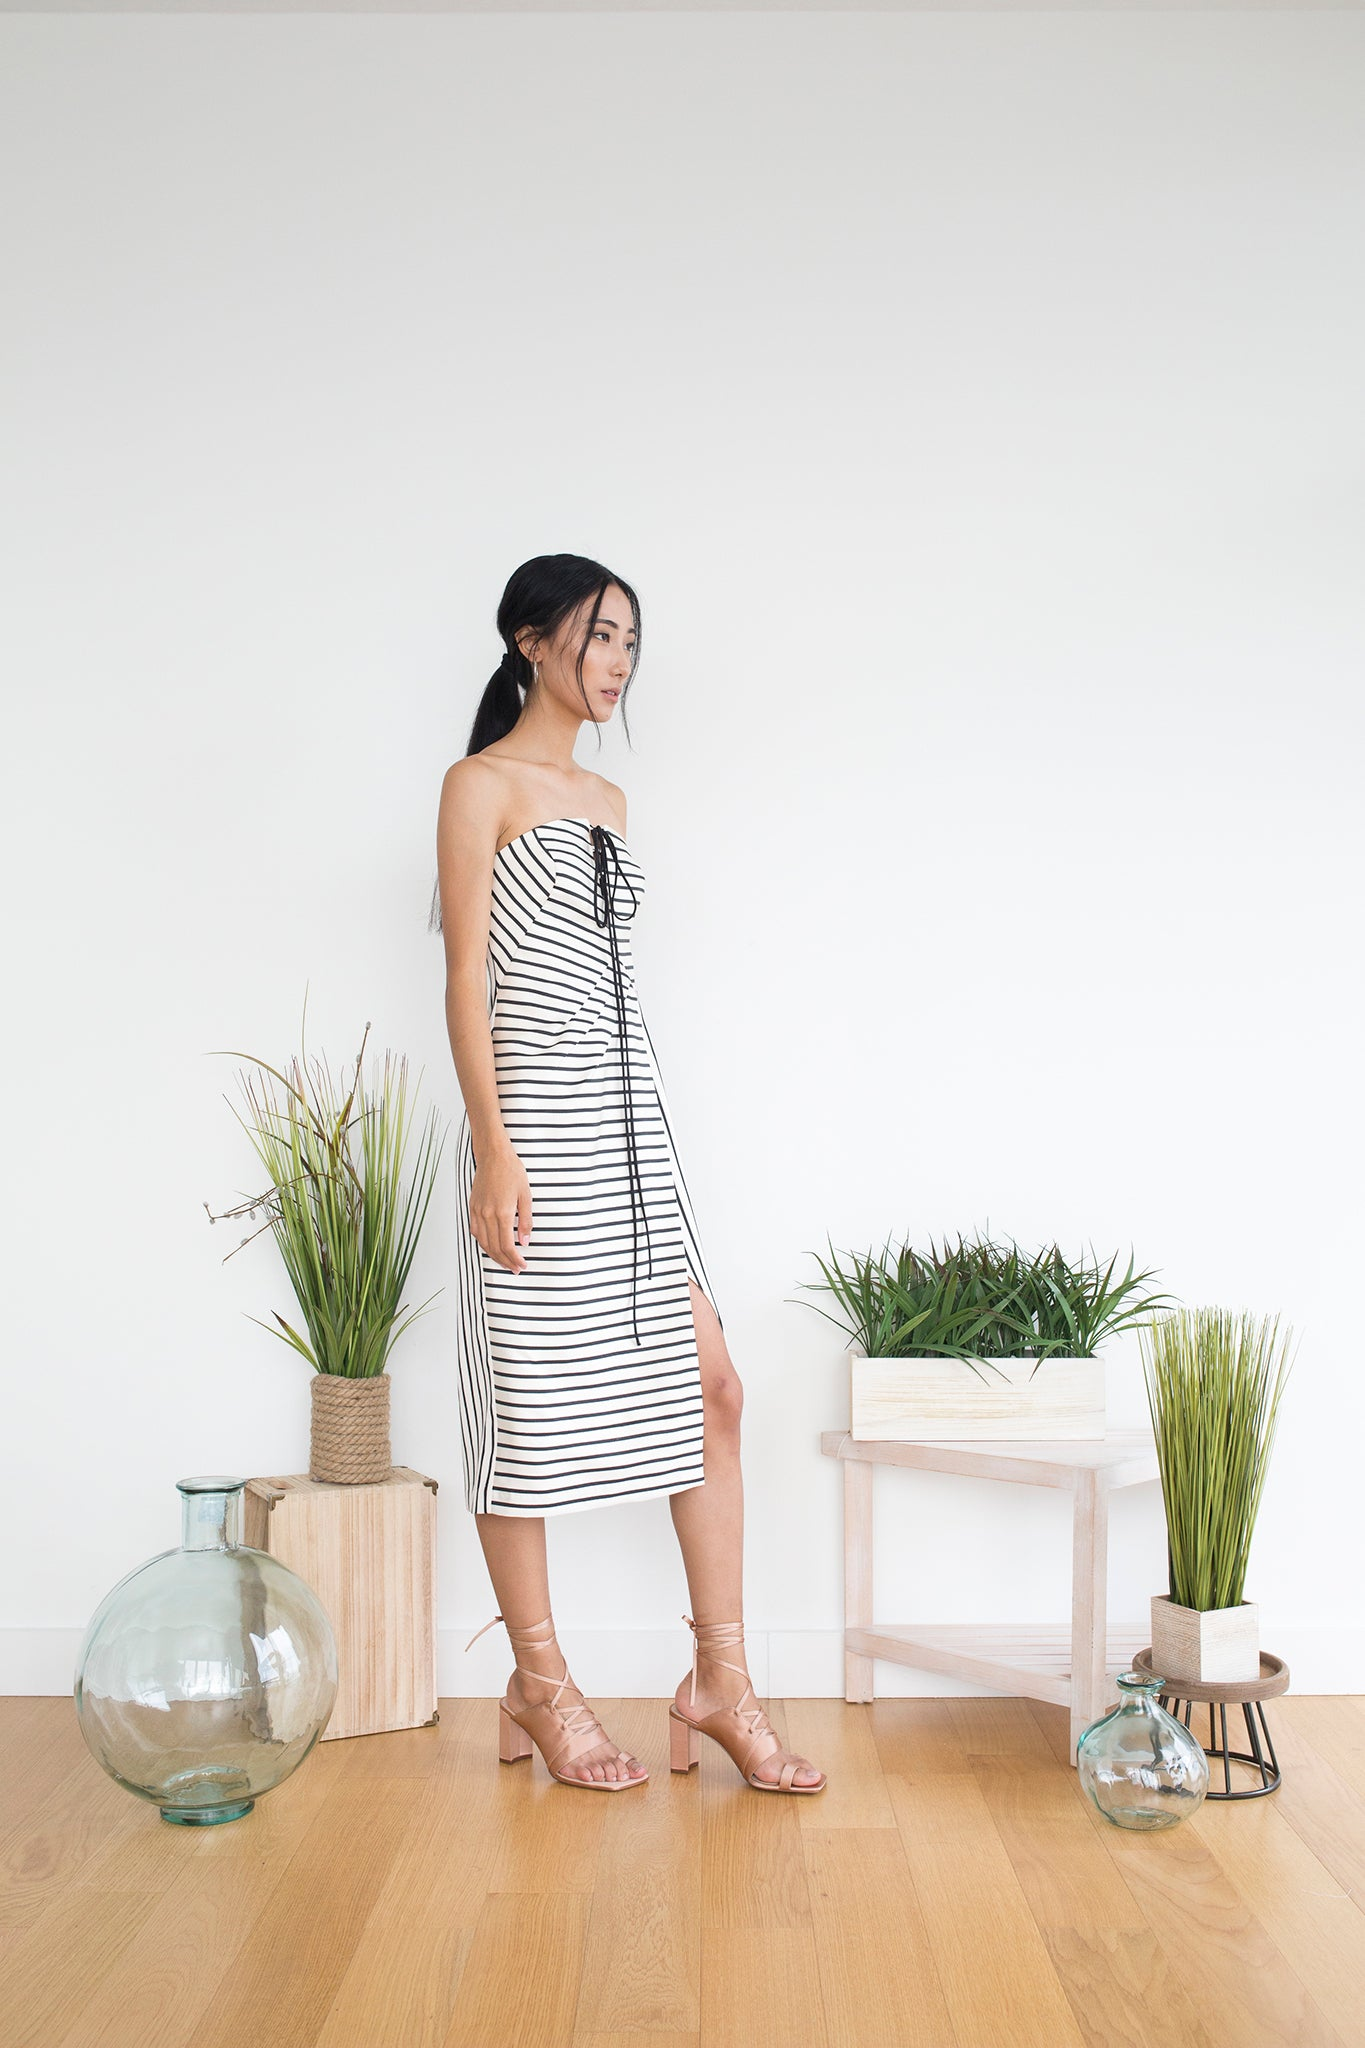 Galloro Dress in Beige Stripe